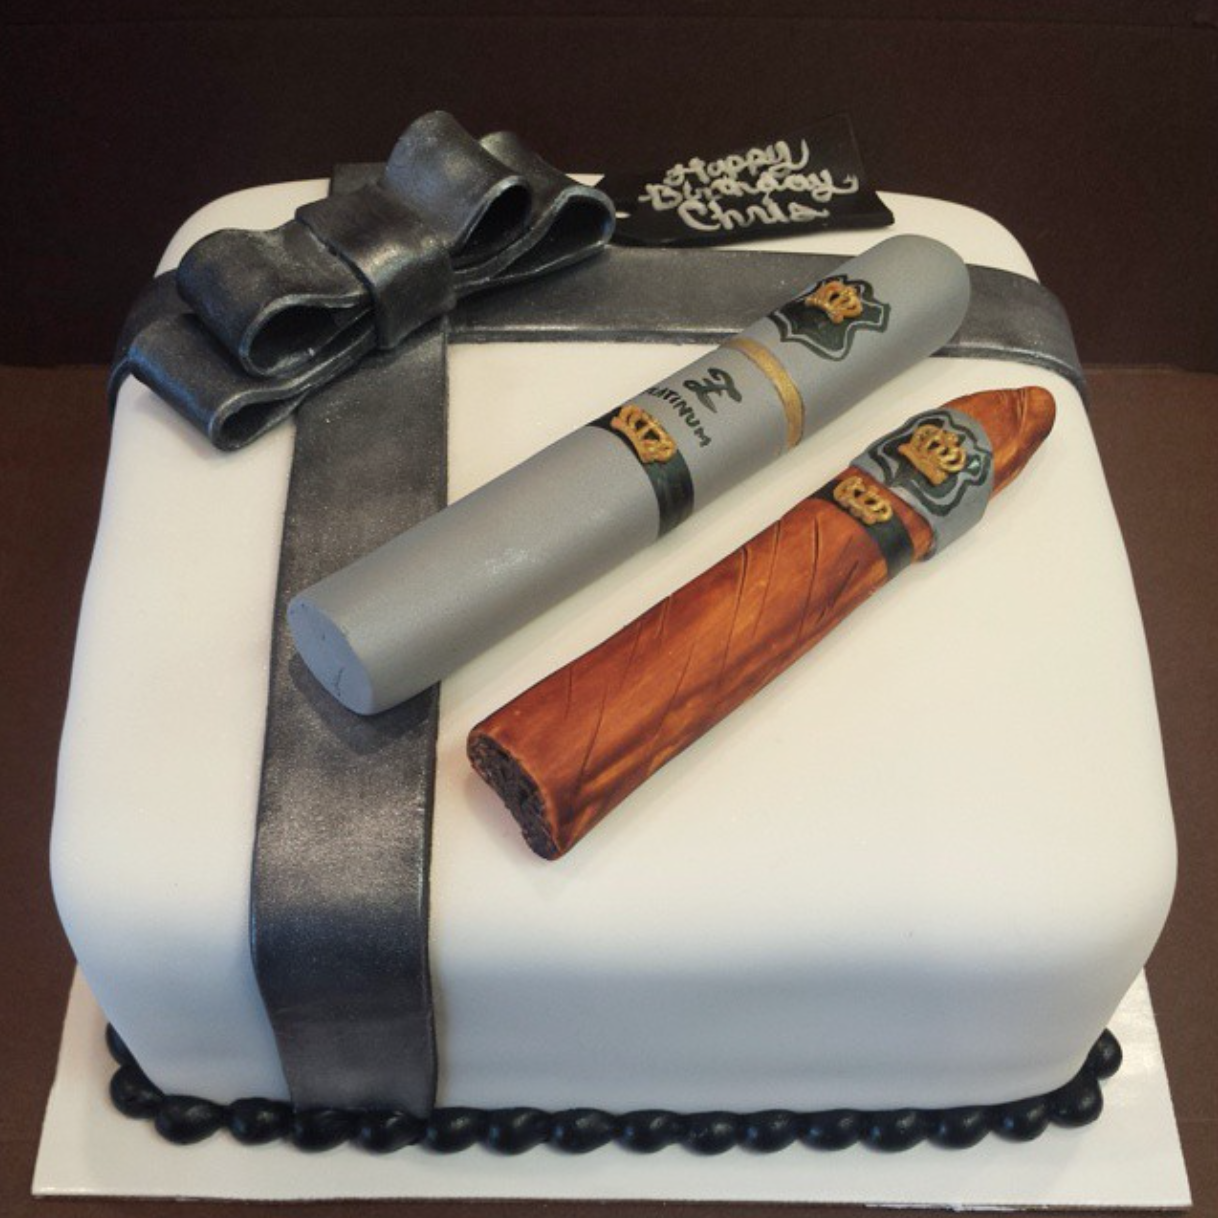 Cigar birthday cake by Frostings Bake Shop | Cakes in 2019 | Cigar ...